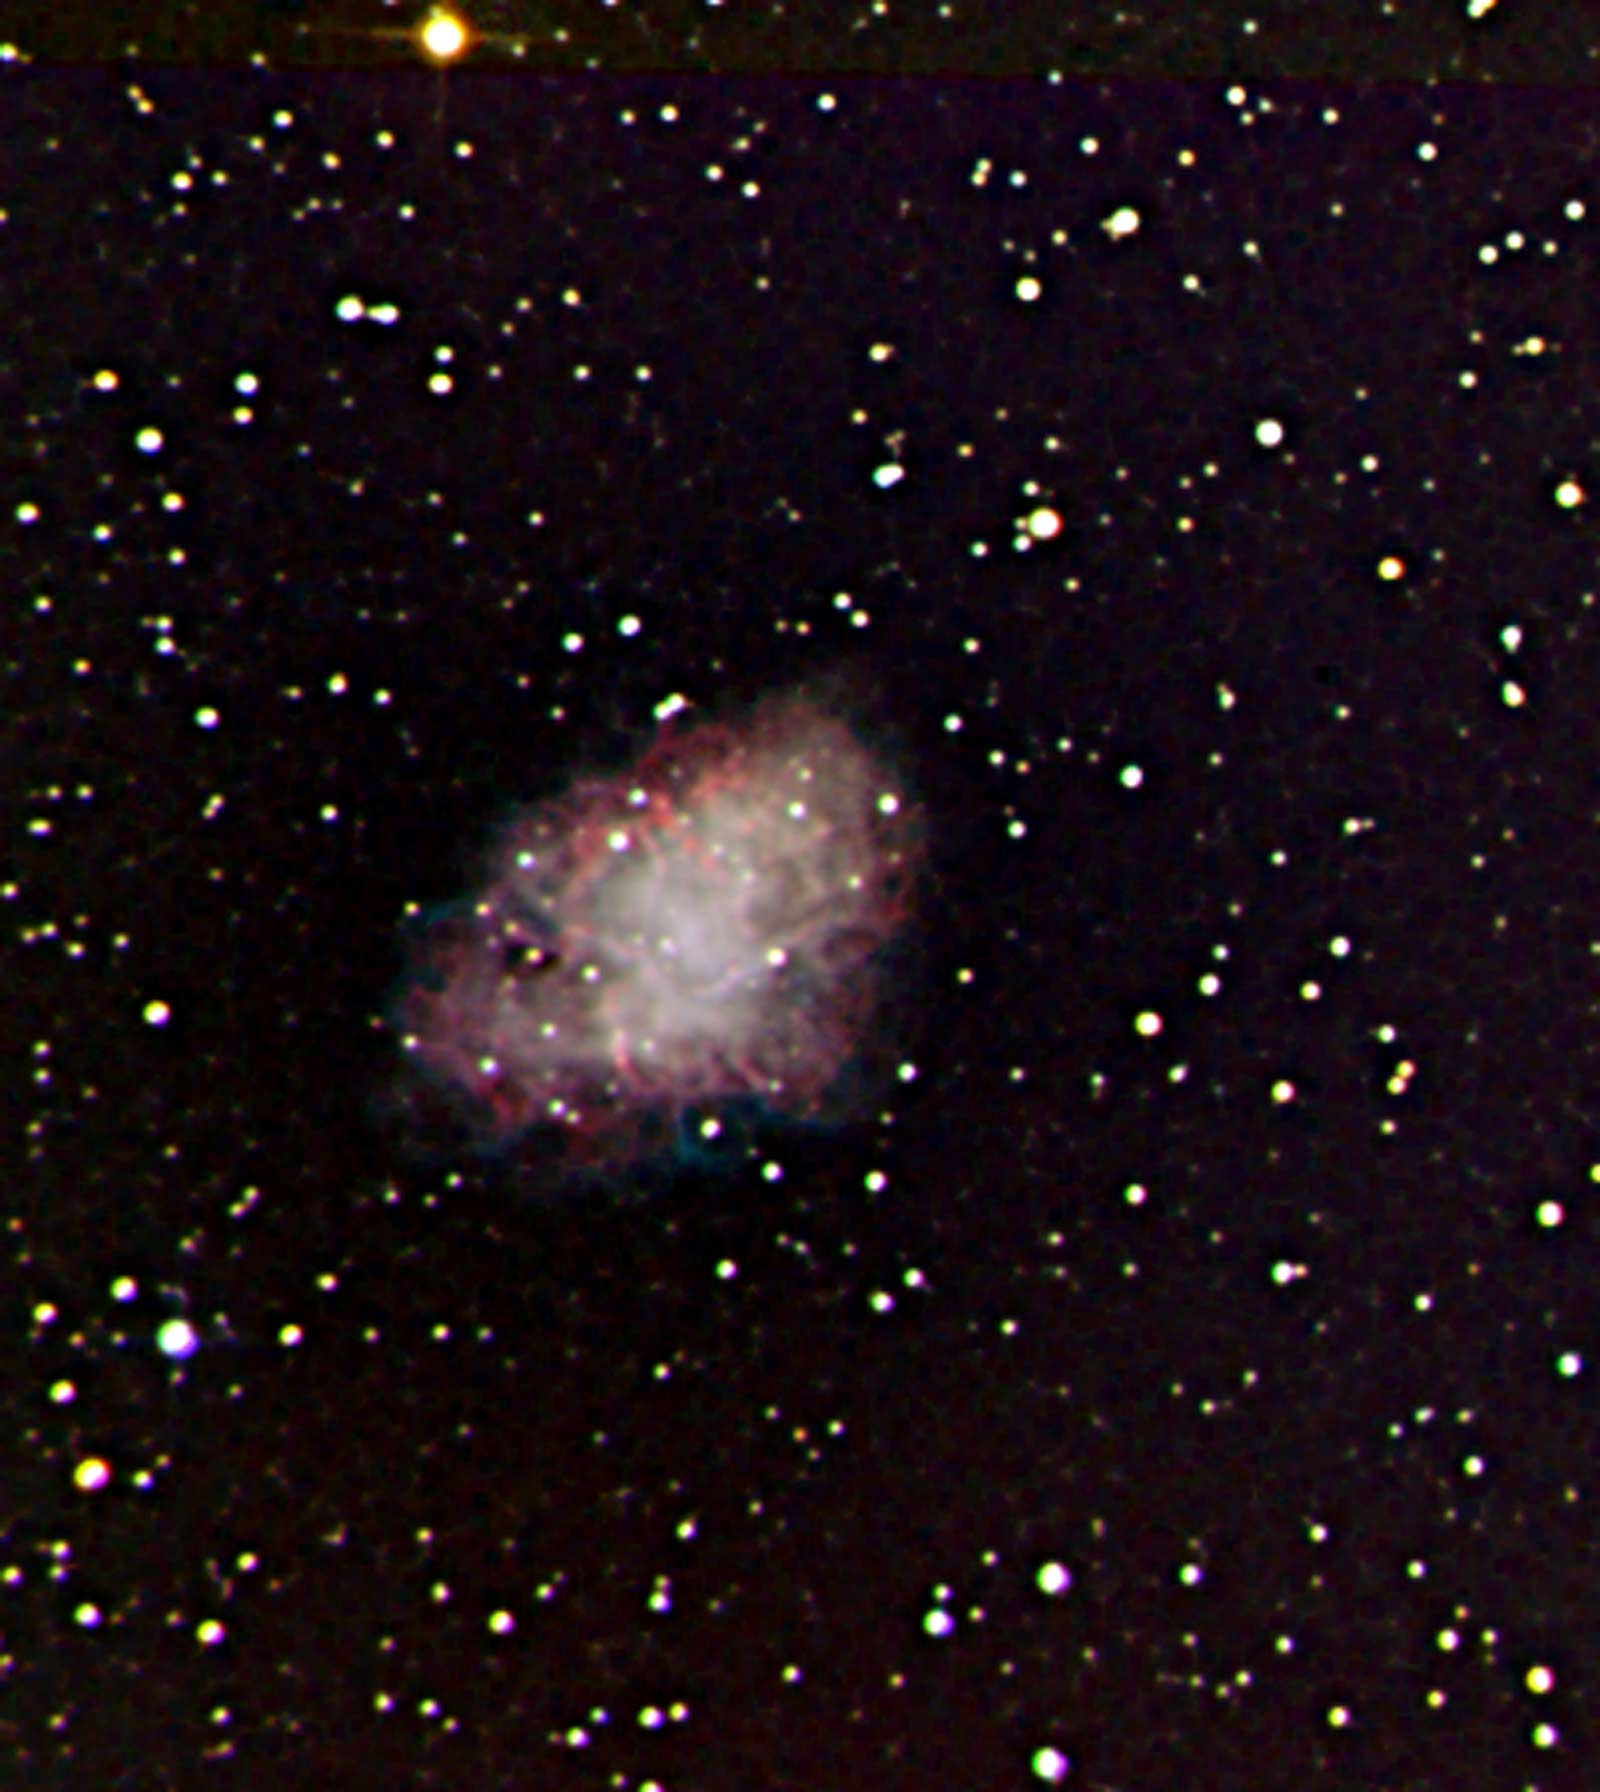 crab nebula to earth distance - photo #43